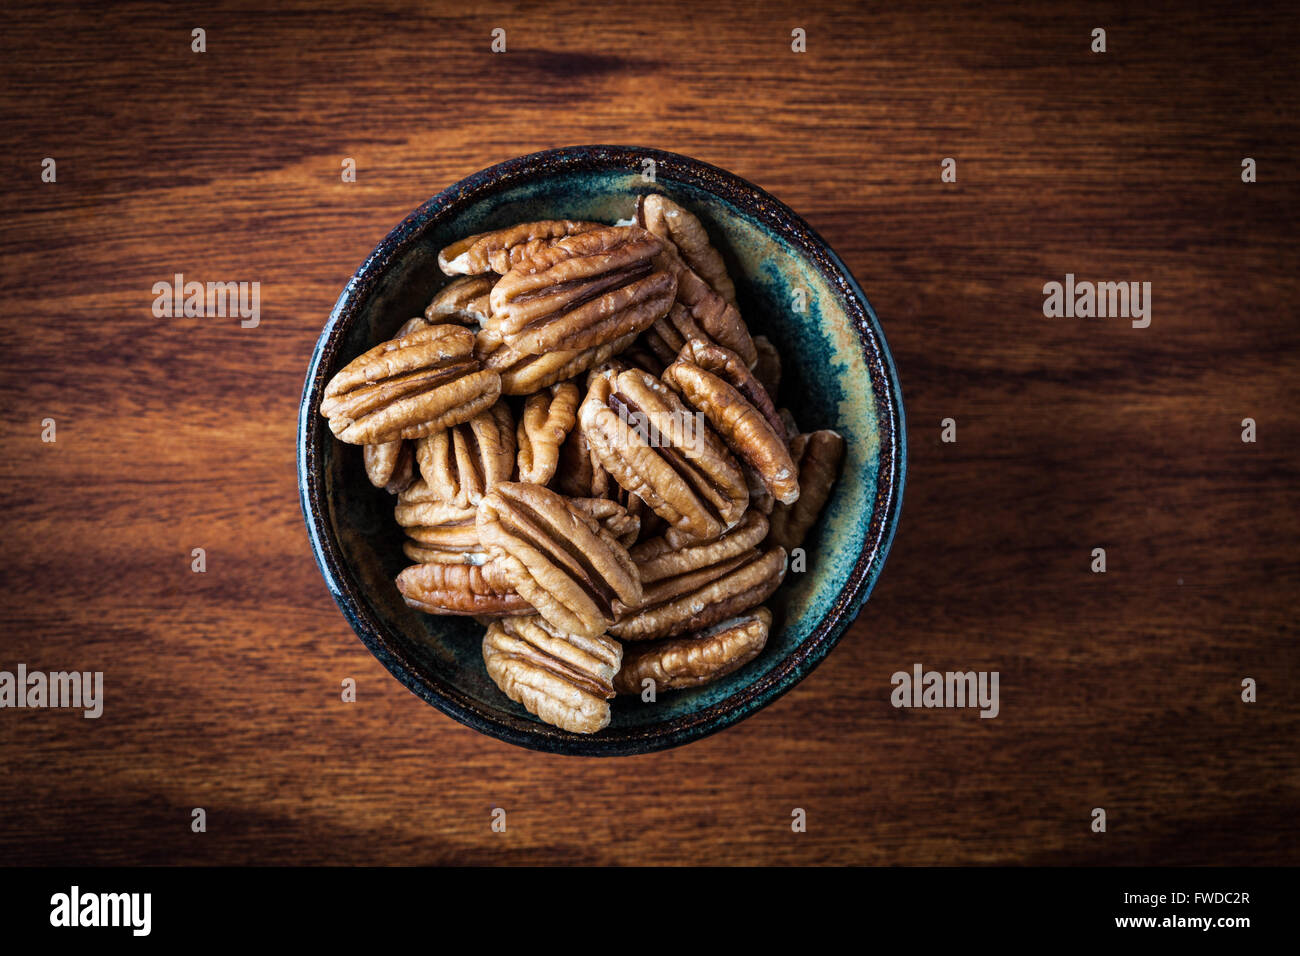 Pecans in ceramic bowl on wooden table. Shallow depth of field. Top view. - Stock Image